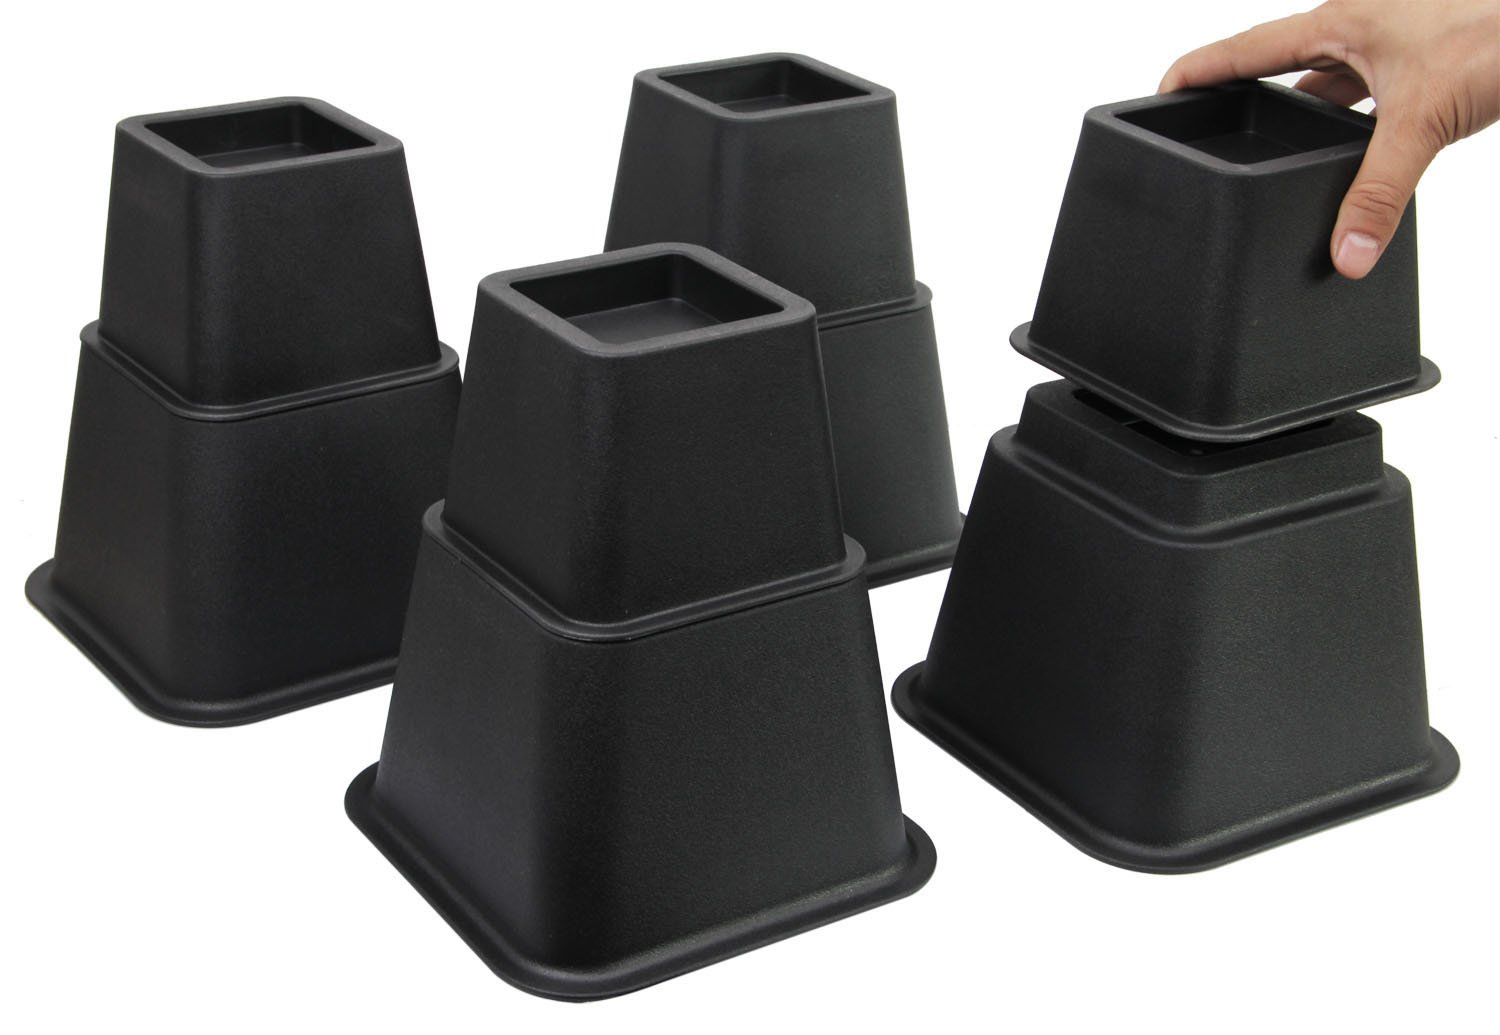 Easygoing Adjustable Bed Risers-3 Height Option Risers, Furniture Riser Bed Riser and Bed Lifts, Set of 4